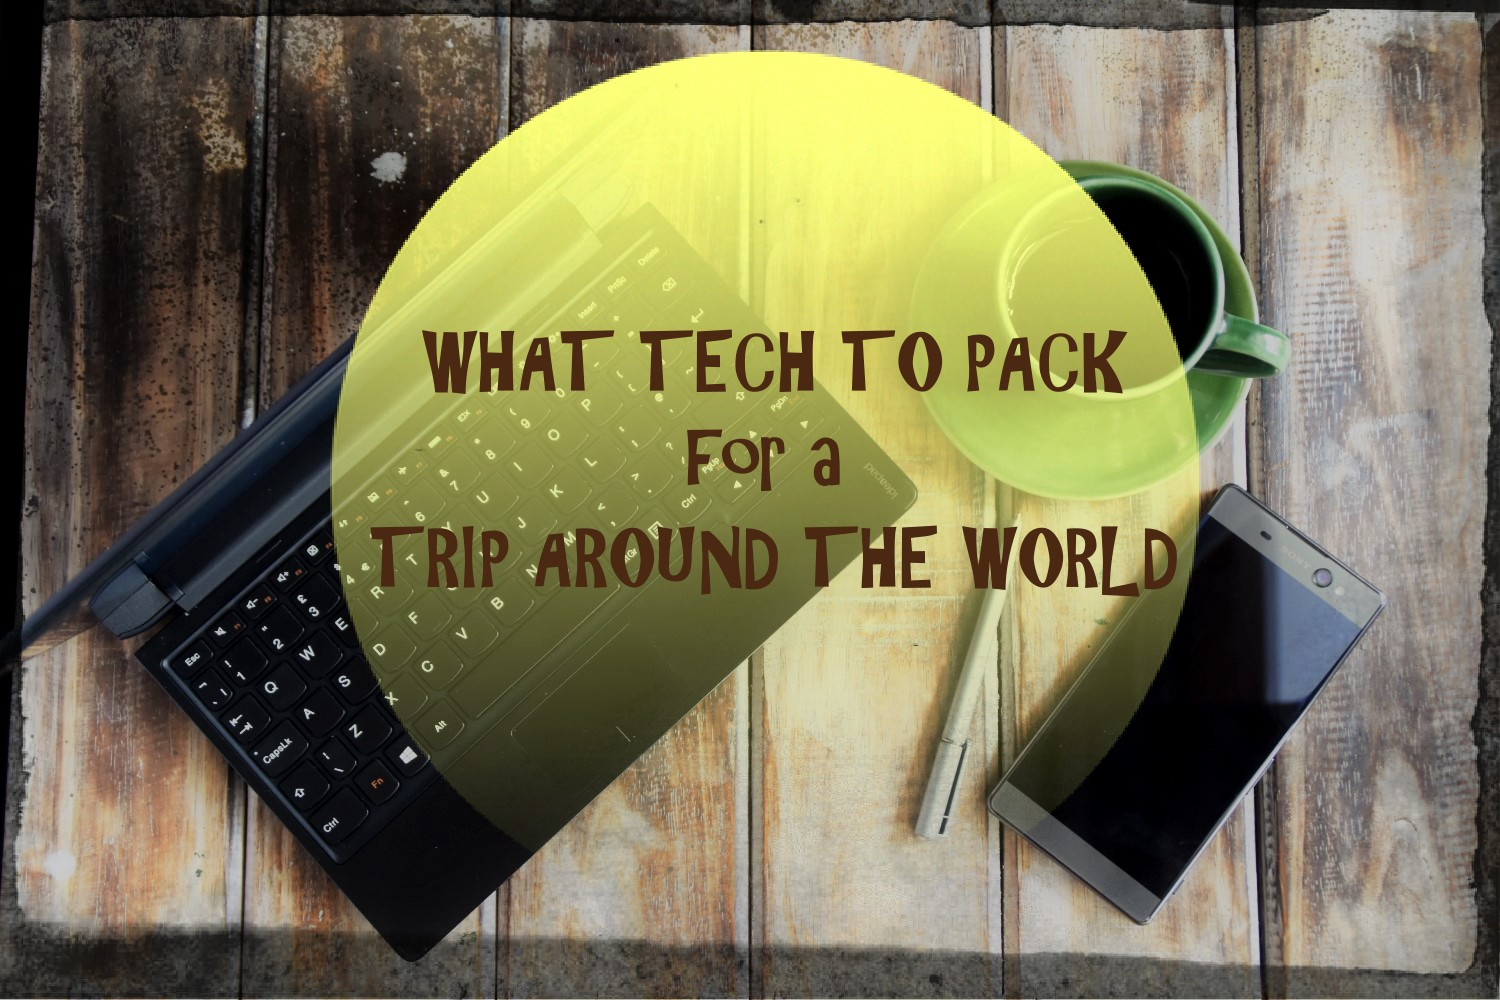 What tech to pack for a trip around the world